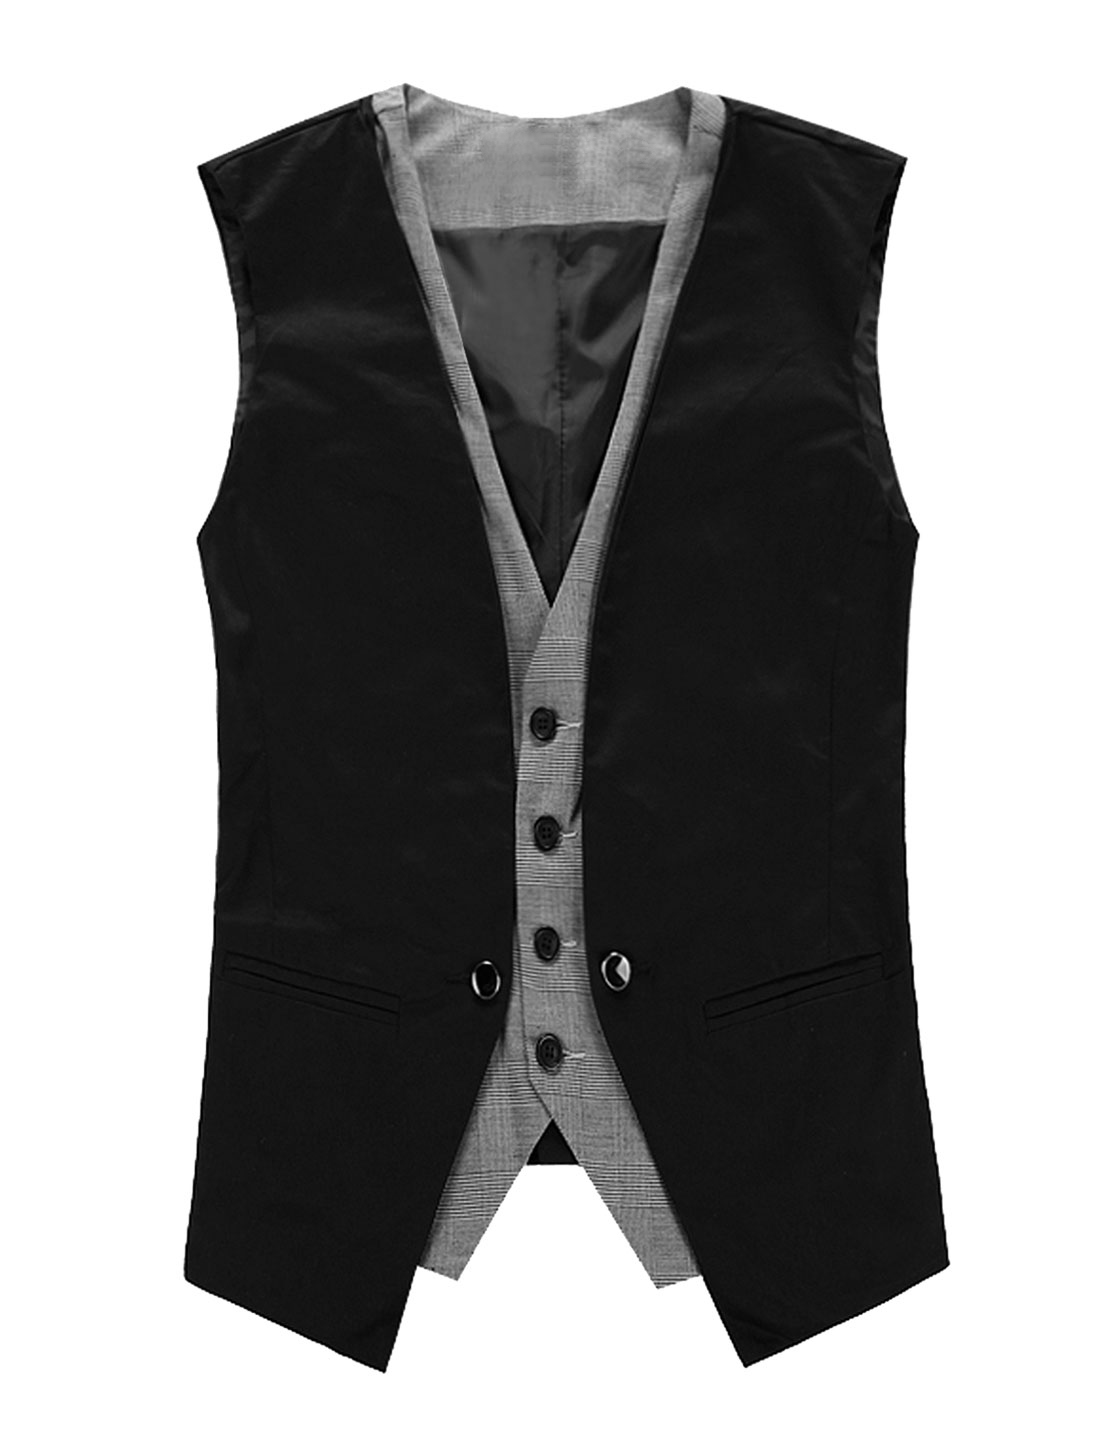 Men Button Down Closure V Neck Sleeveless Plaid Layered Waistcoat Vest Black L